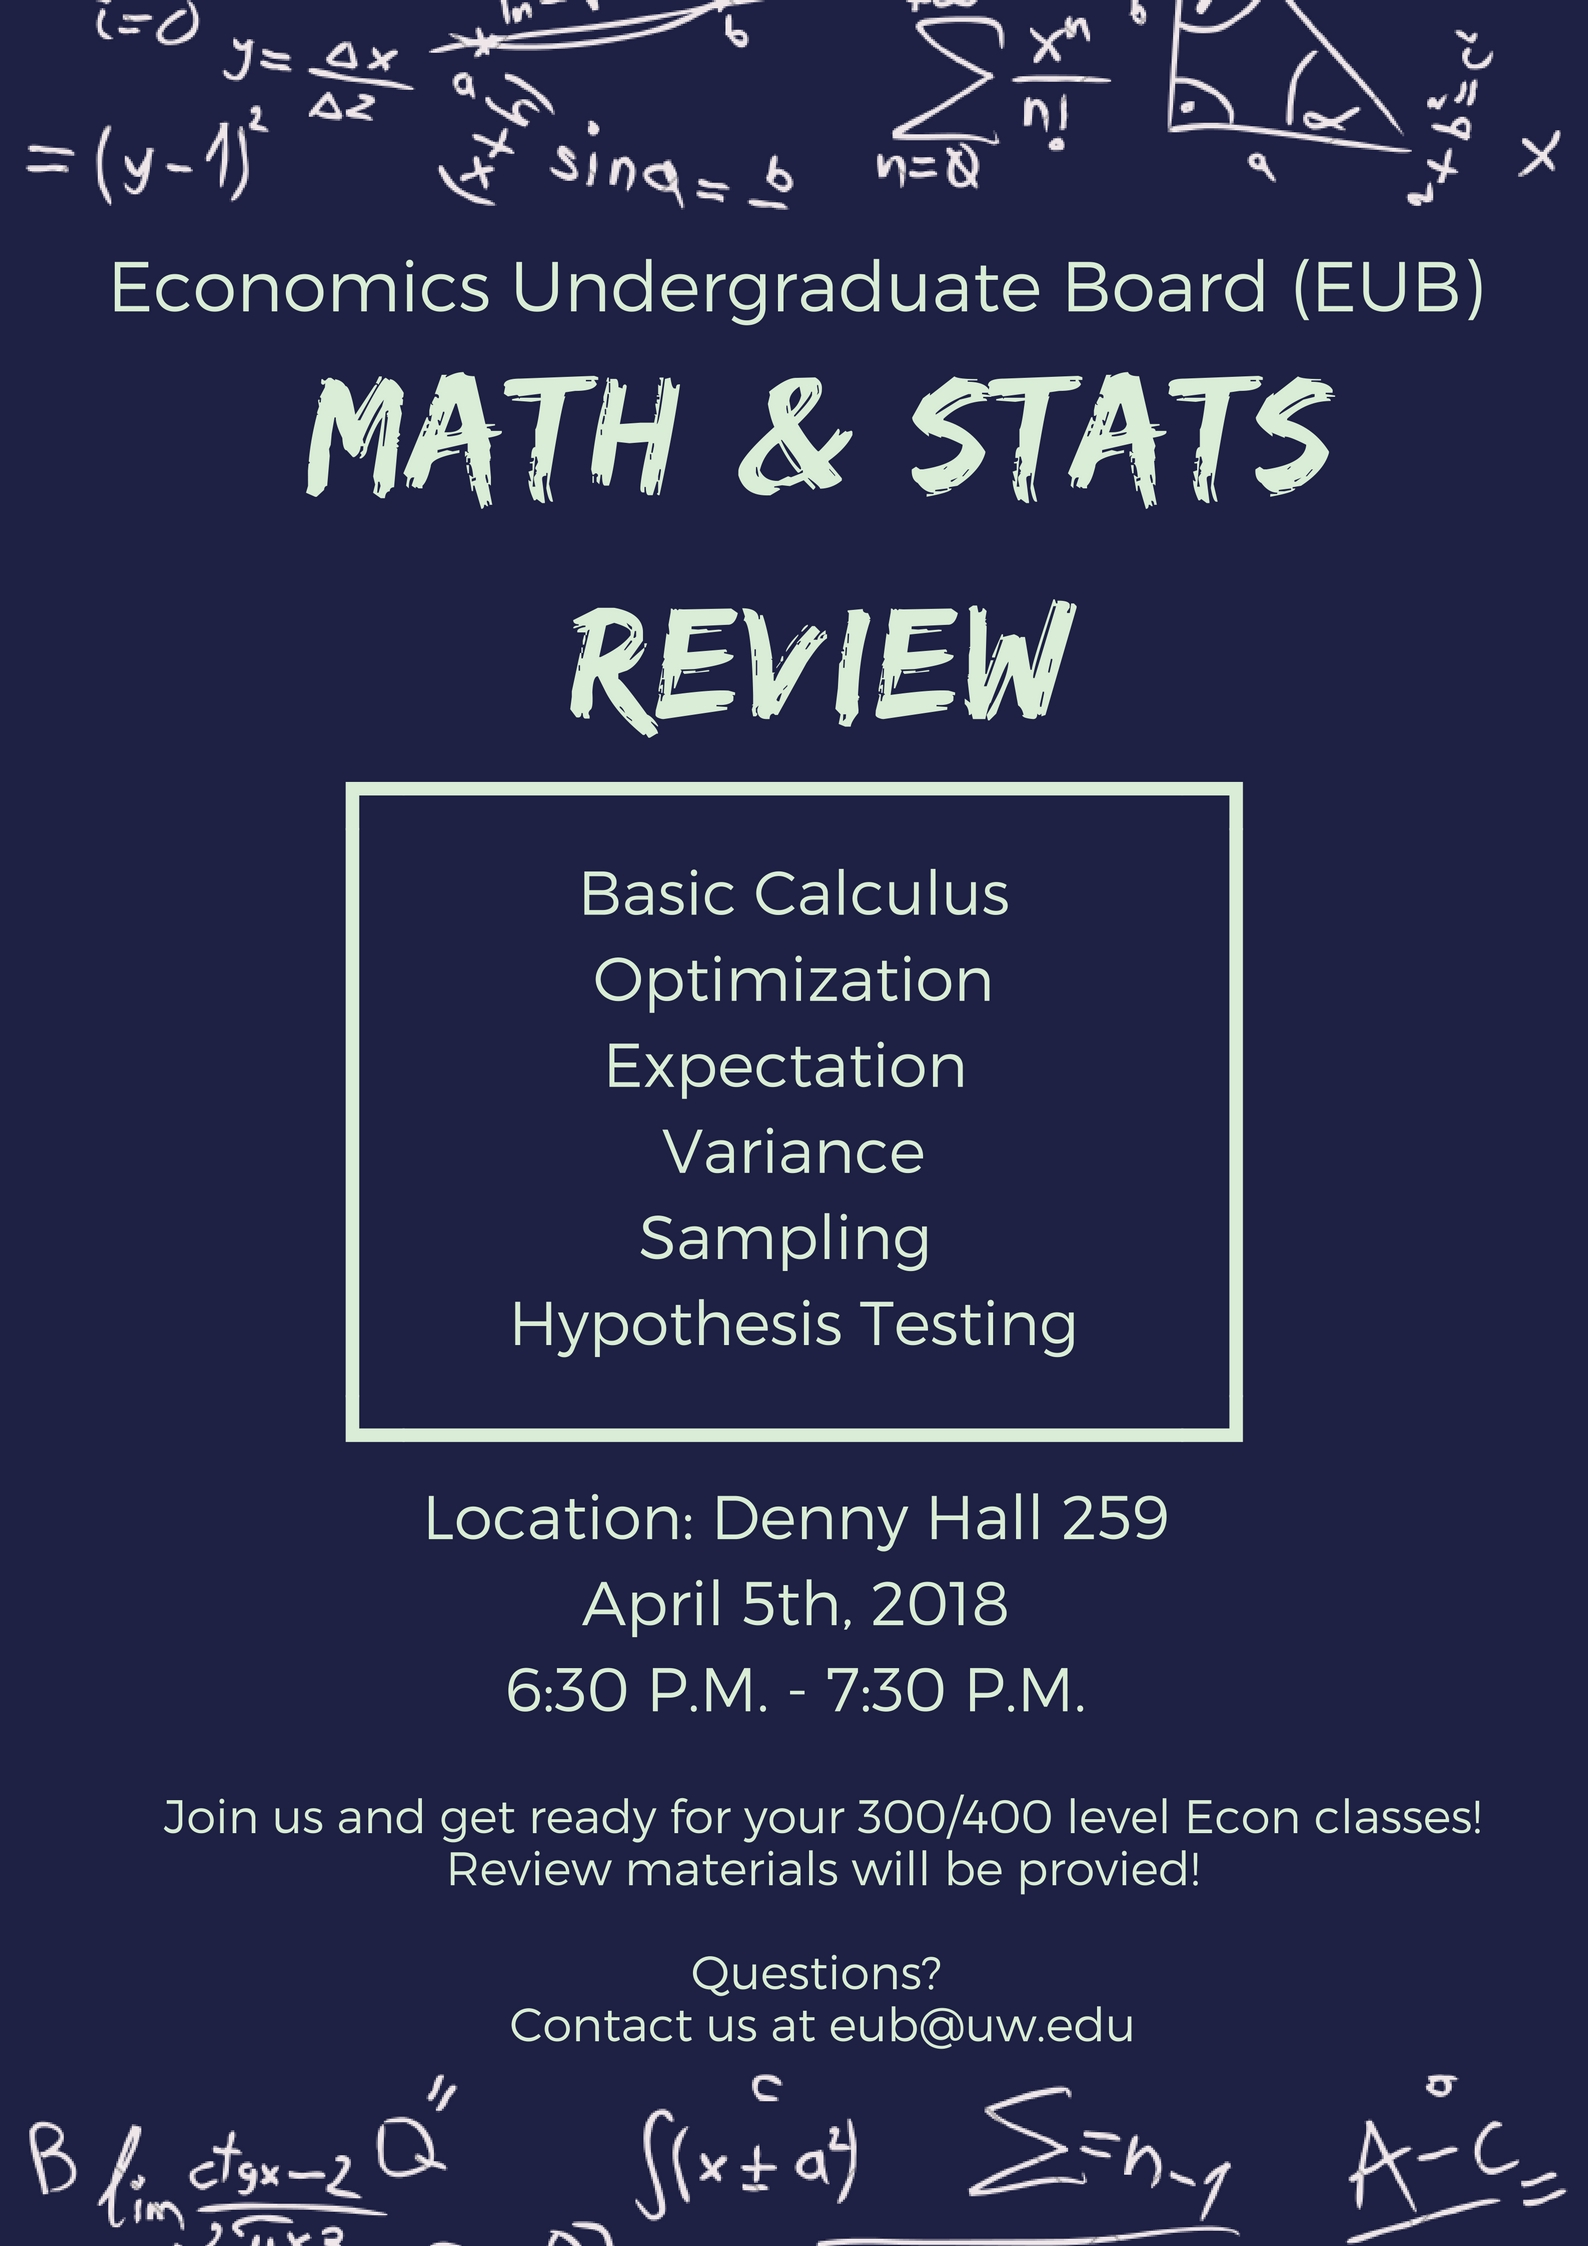 EUB Math and Stats Review_Spring 2018_V2